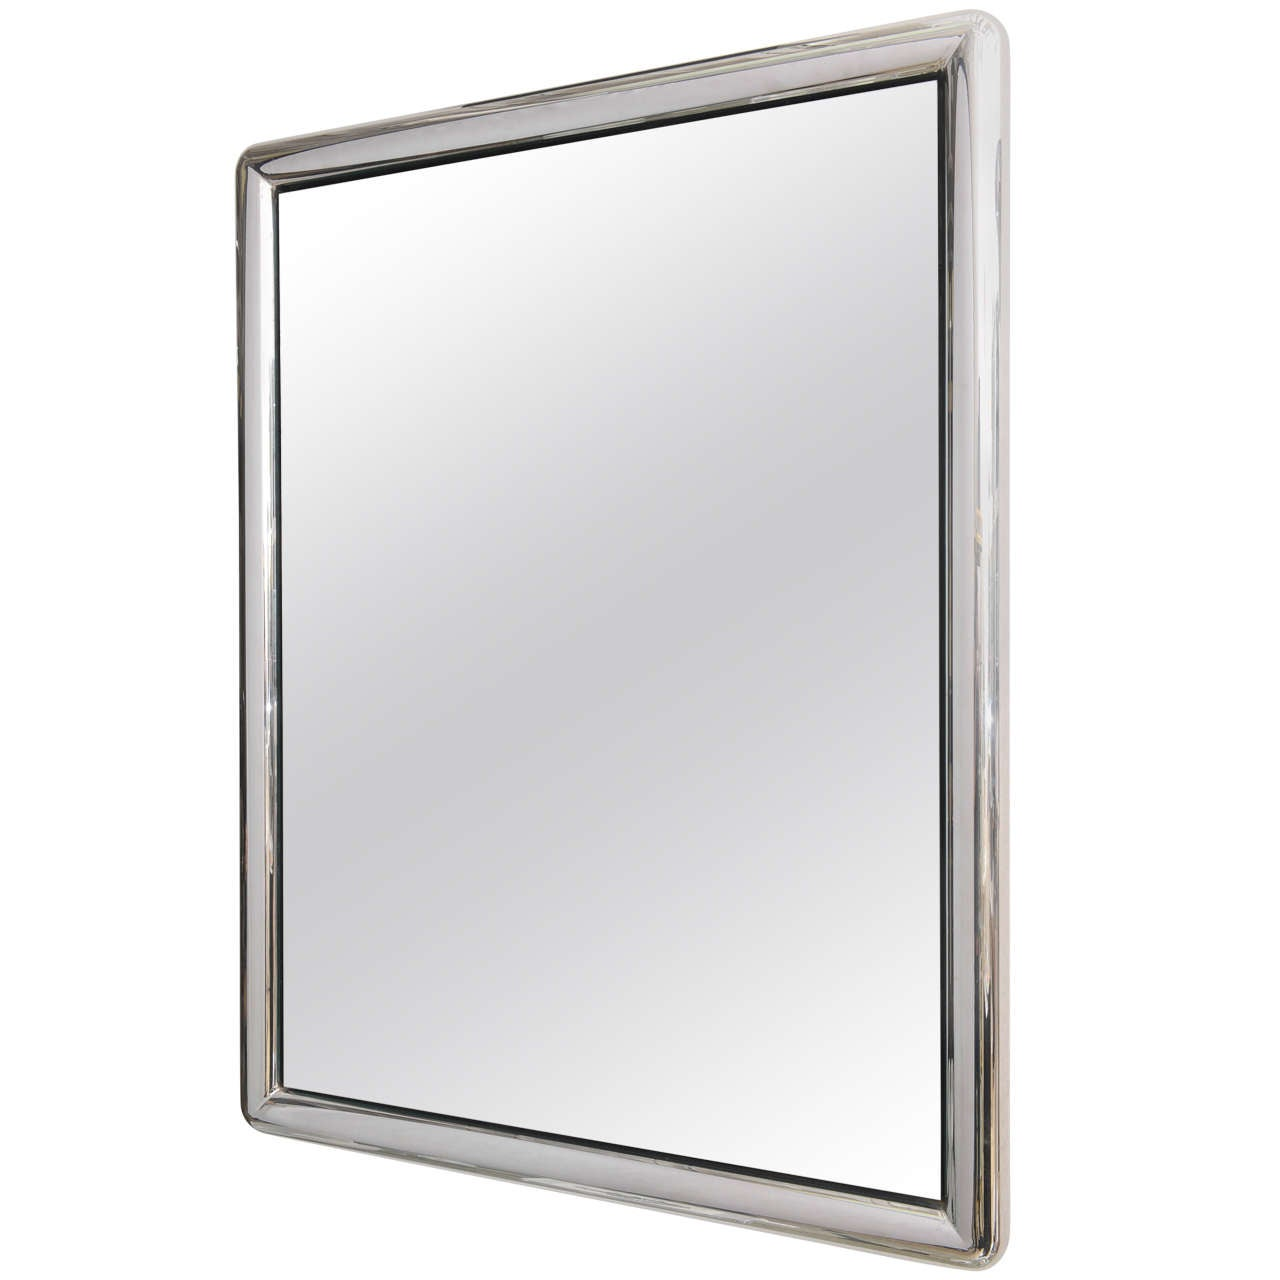 Chrome framed wall mirror at 1stdibs for Framed wall mirrors